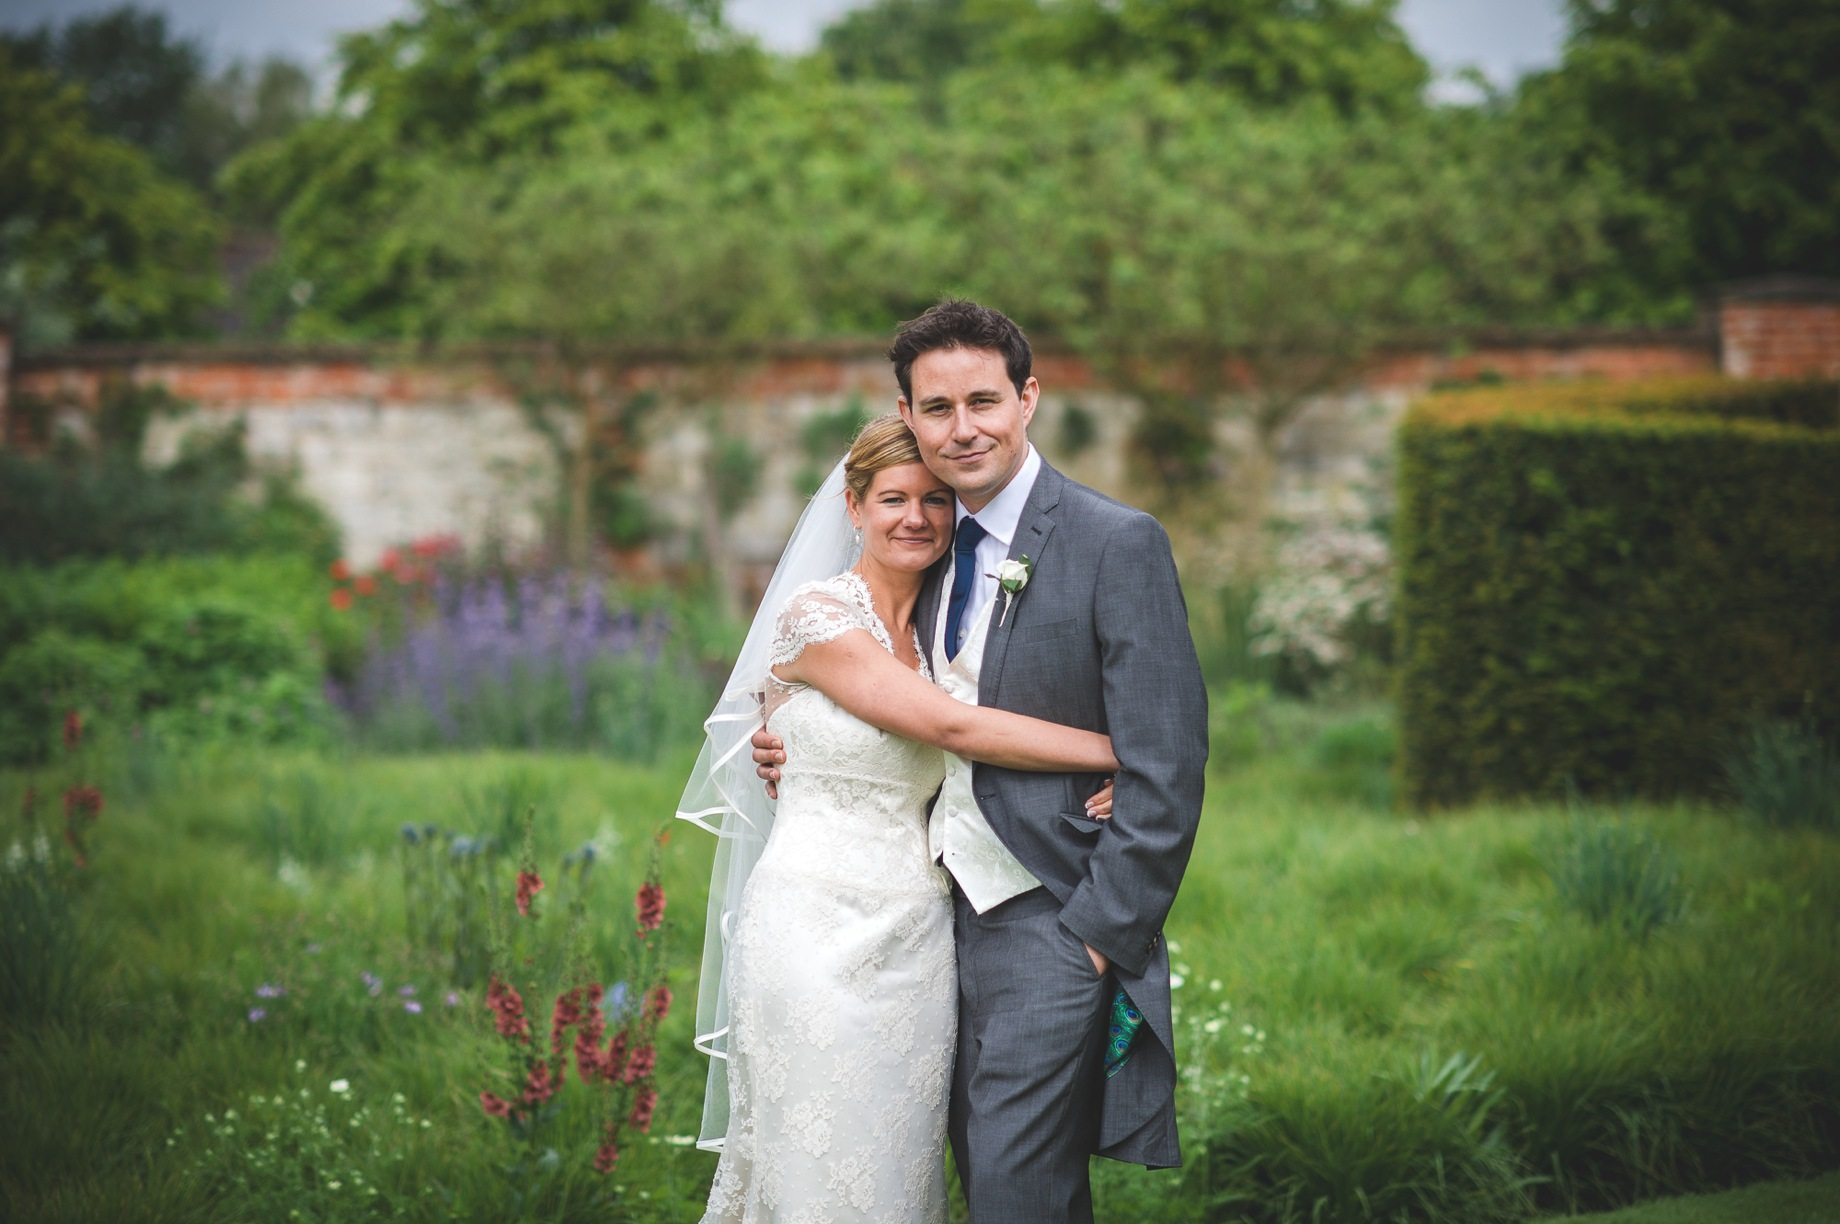 85Best Wedding Photography Guy Collier